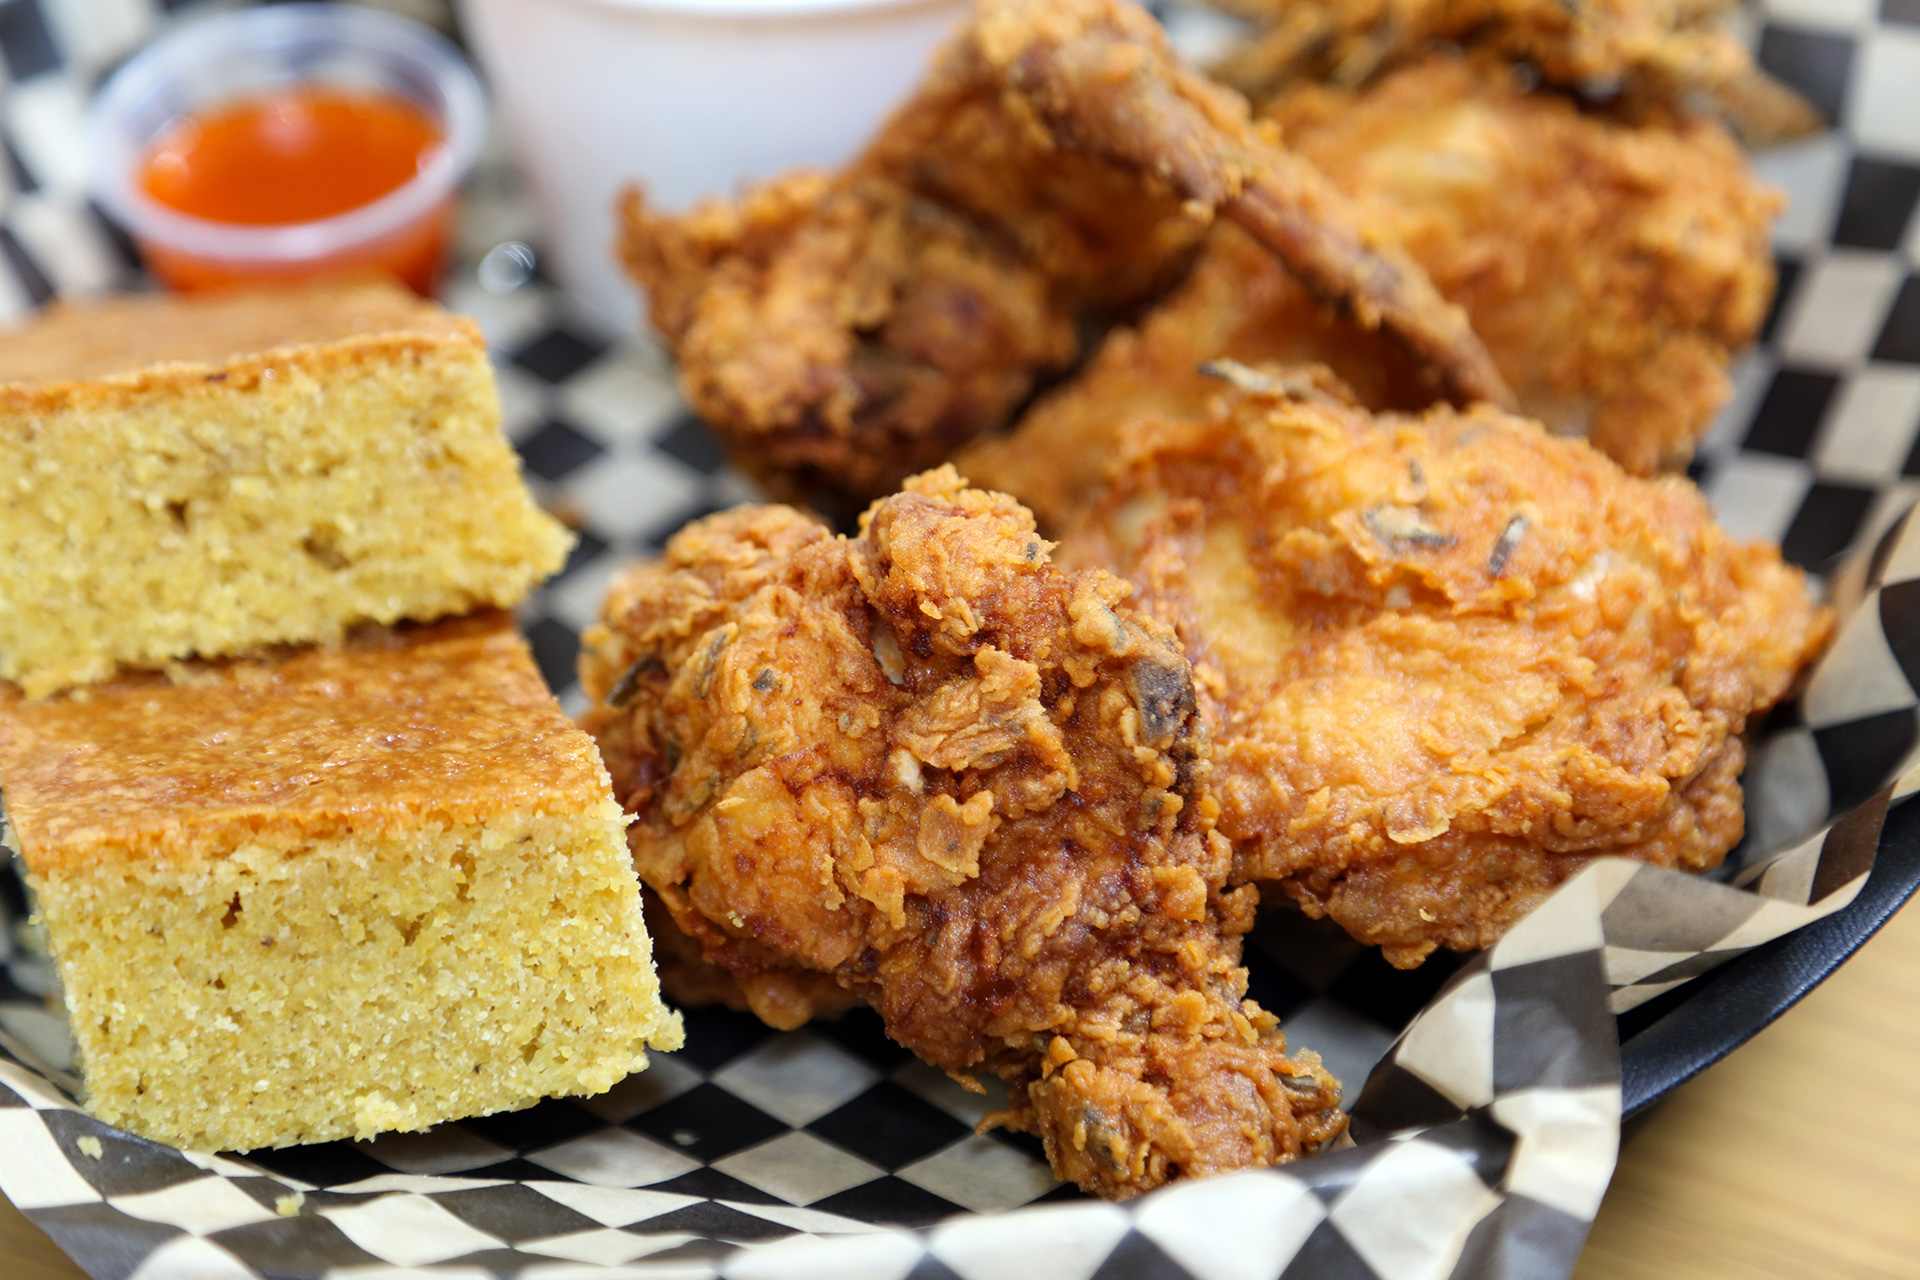 Millie Bell's Rosemary Fried Chicken and Cornbread.